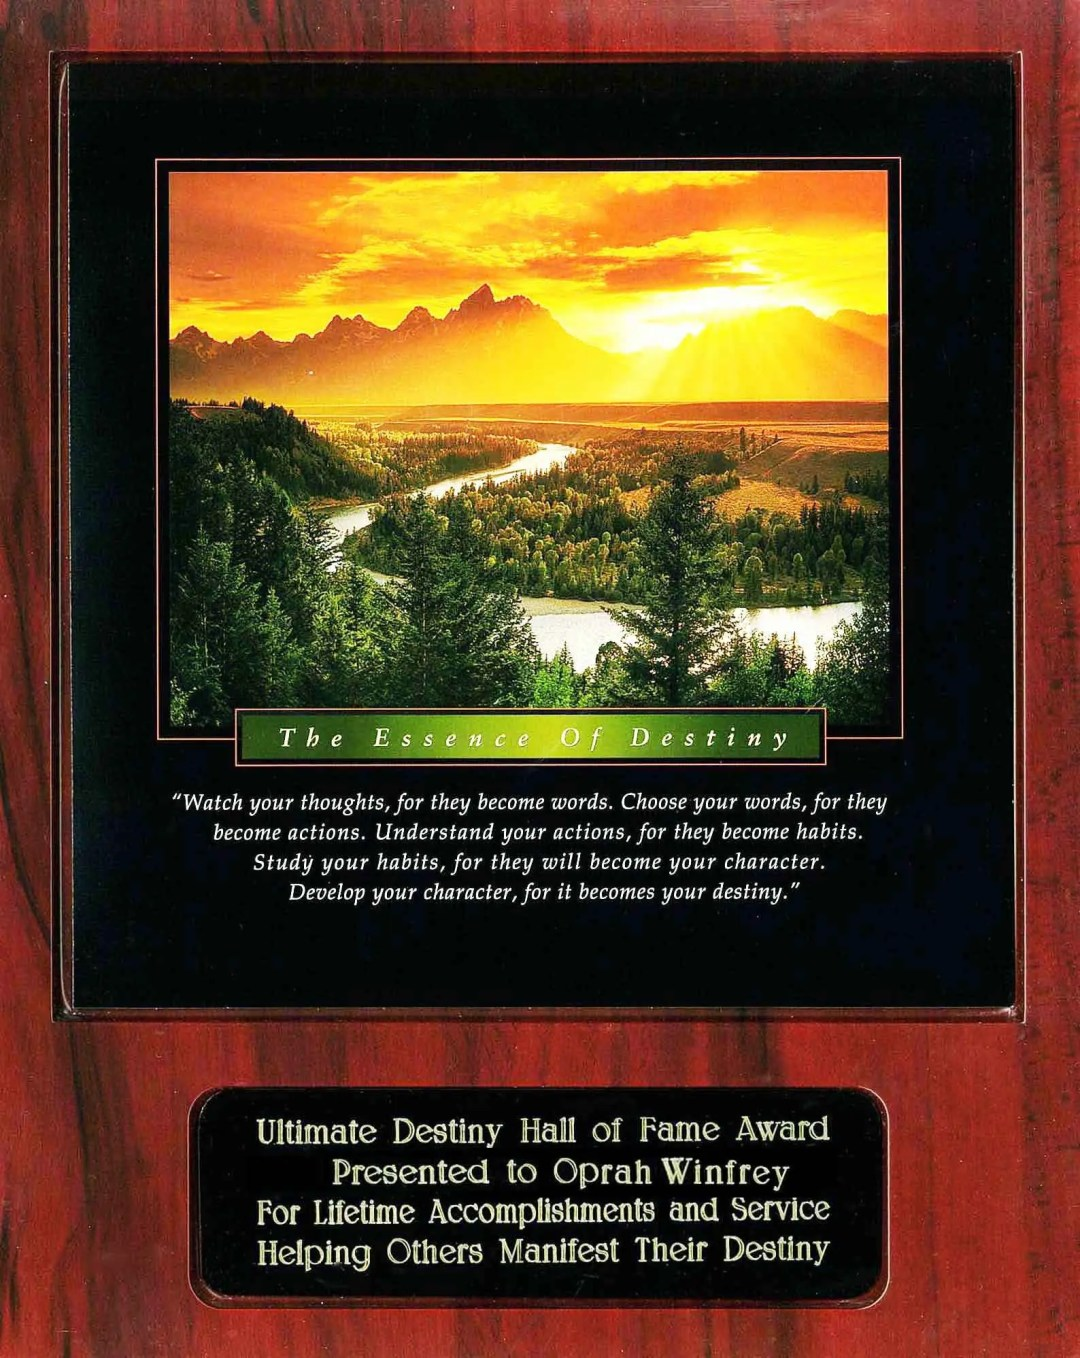 Oprah Winfrey Ultimate Destiny Hall of Fame Award Recipient Plaque